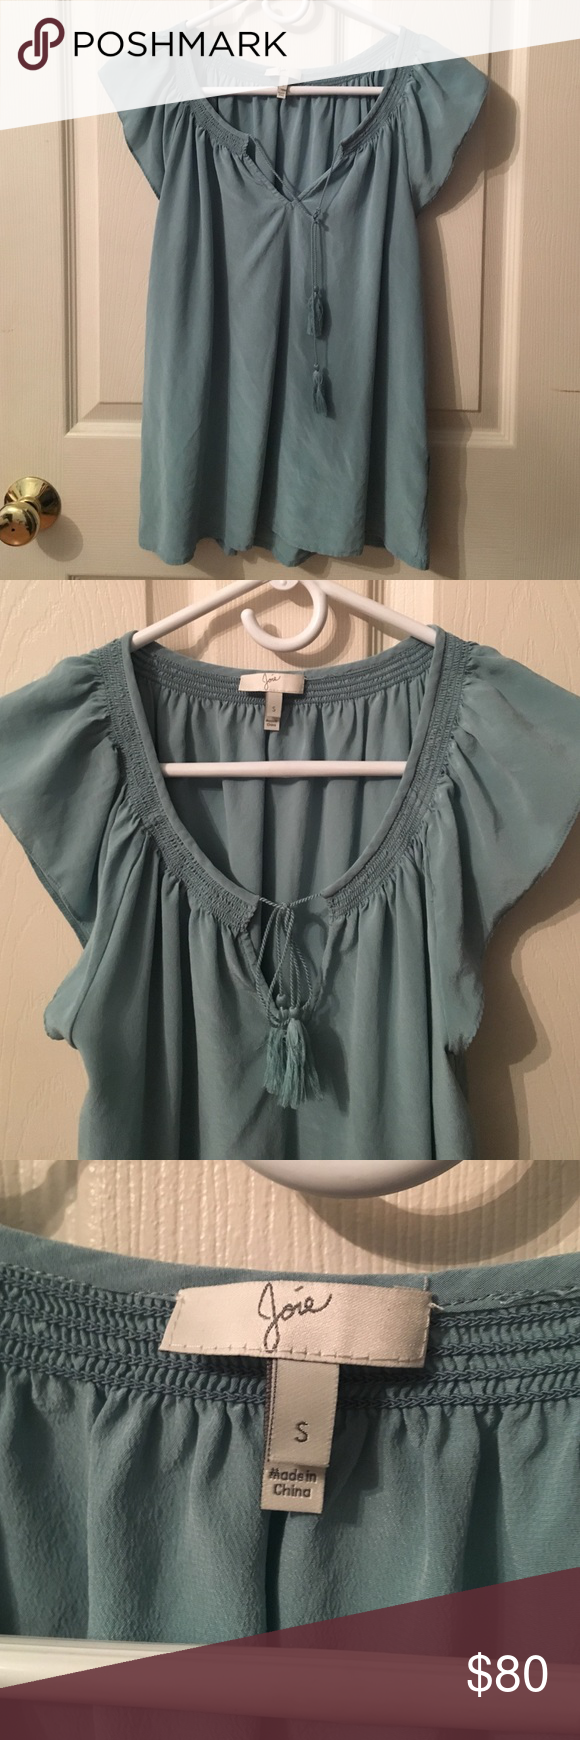 Gorgeous Joie Blouse! NWOT Gorgeous Joie Blouse! NWOT because I bought it for my mom but it didn't fit her, I had already taken all tags off 🙃 bought at Saks in November, it needs a new home! 100% silk! The tassels are cute and the sleeve cut is beautiful! Joie Tops Blouses